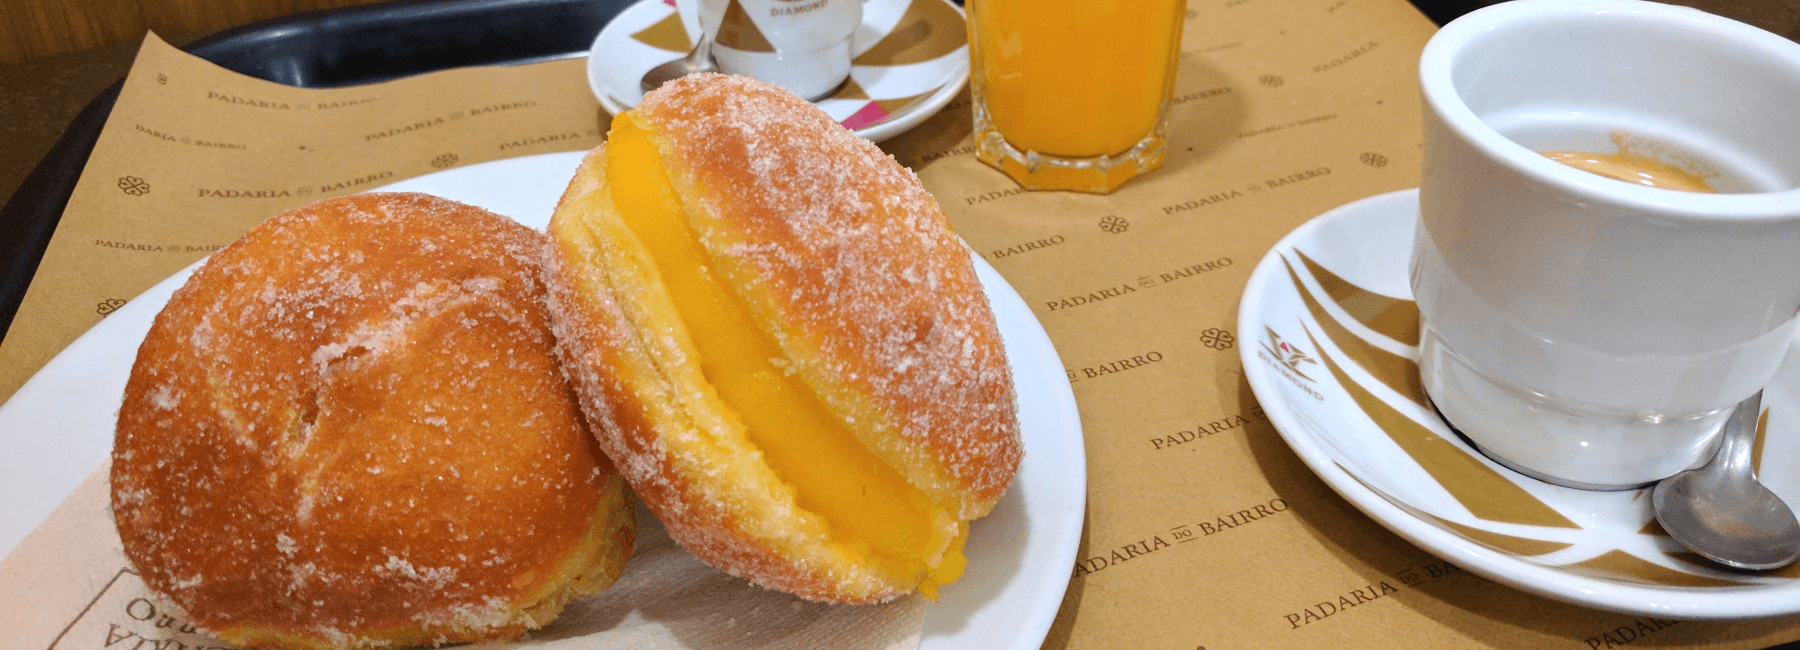 bolas de berlim as served during a food tour at treasures of lisboa